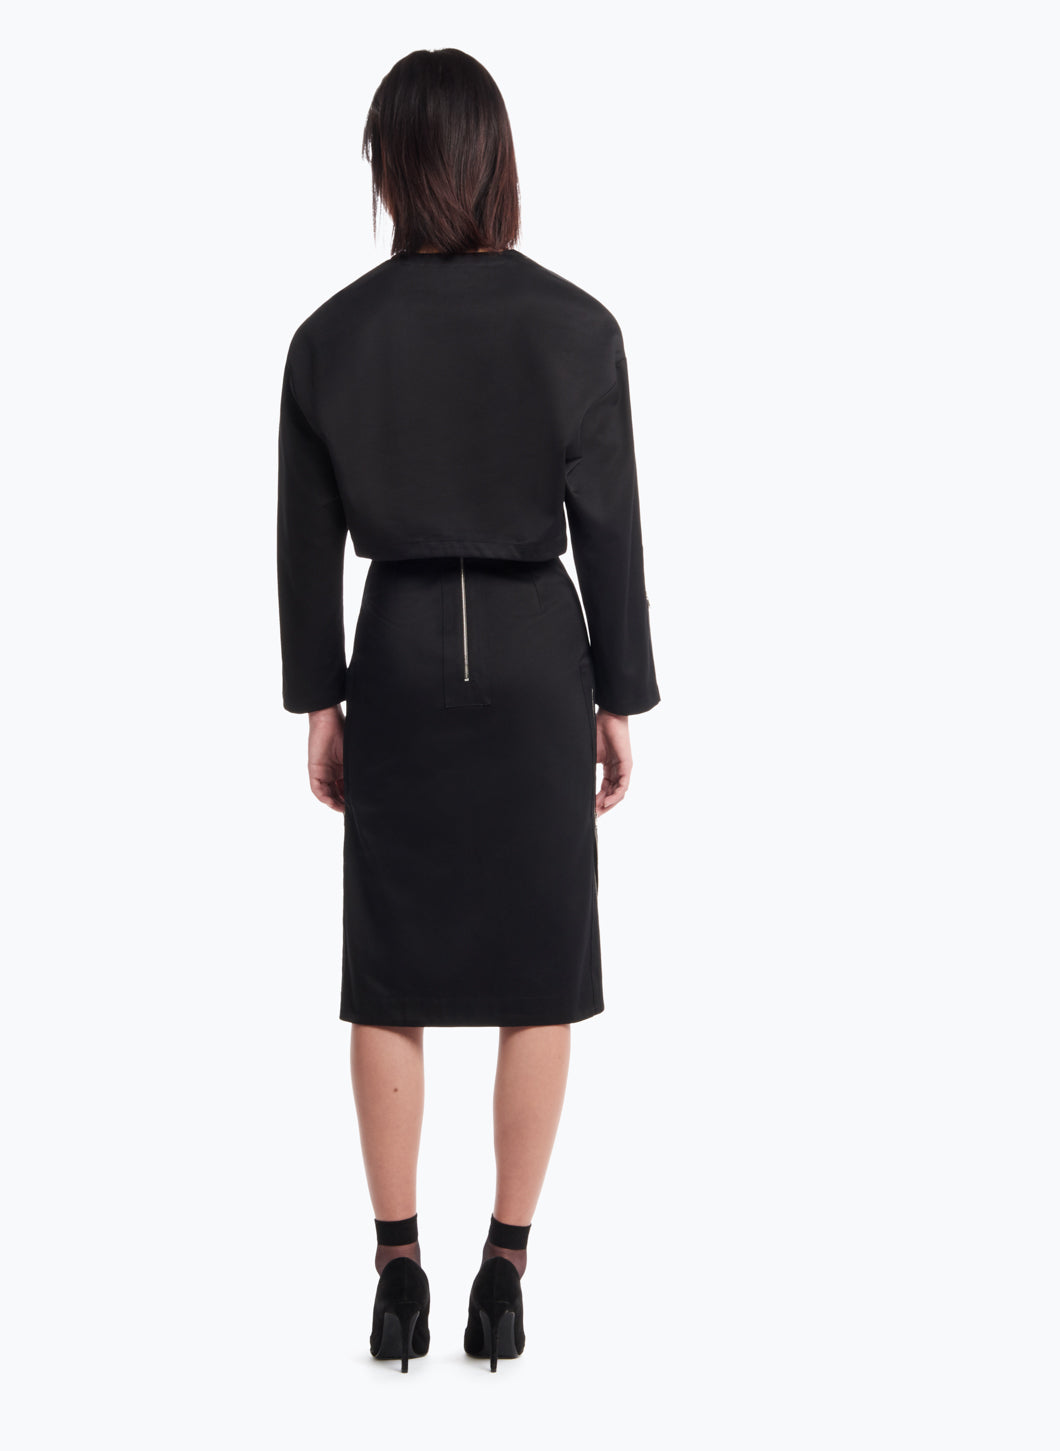 High-Waisted Skirt in Black Cotton Gabardine